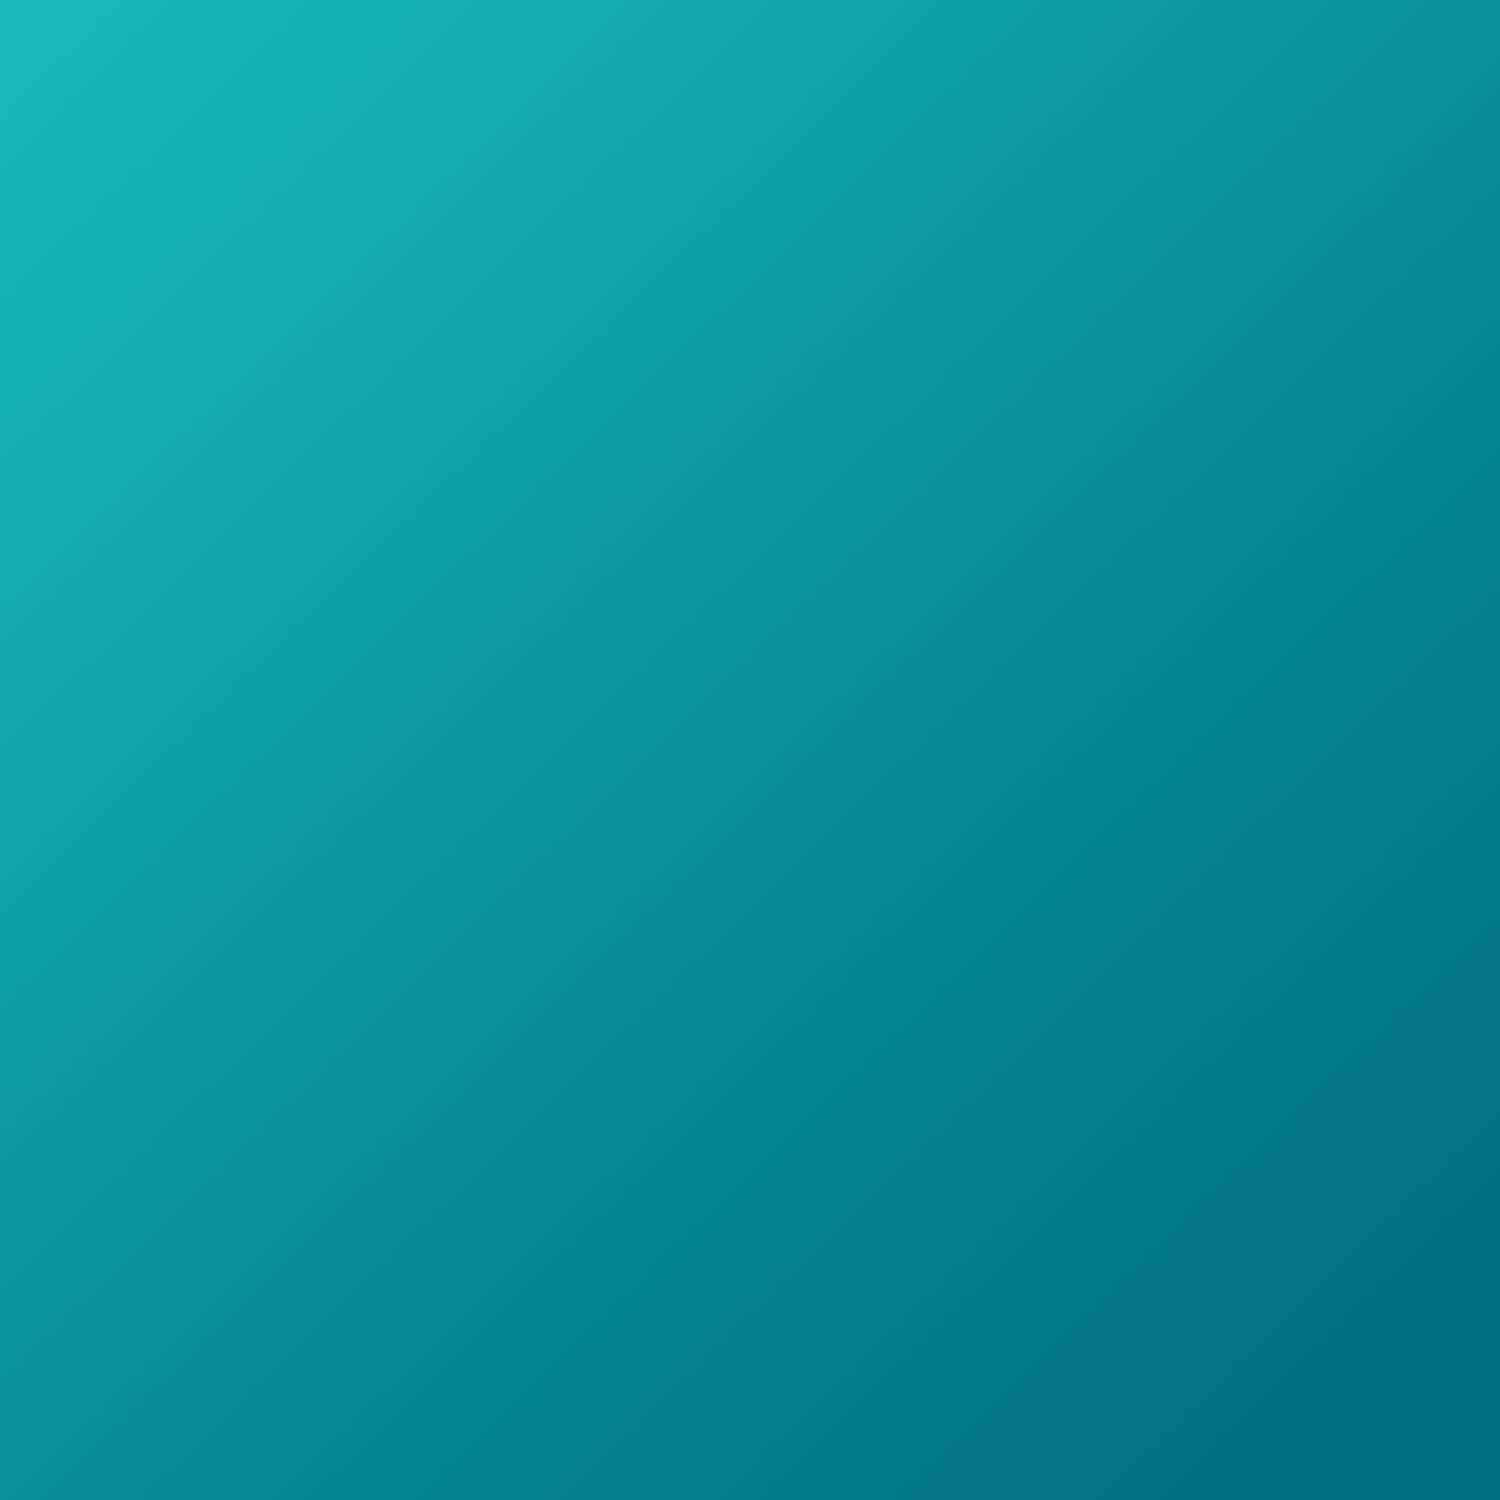 teal-to-green.jpg